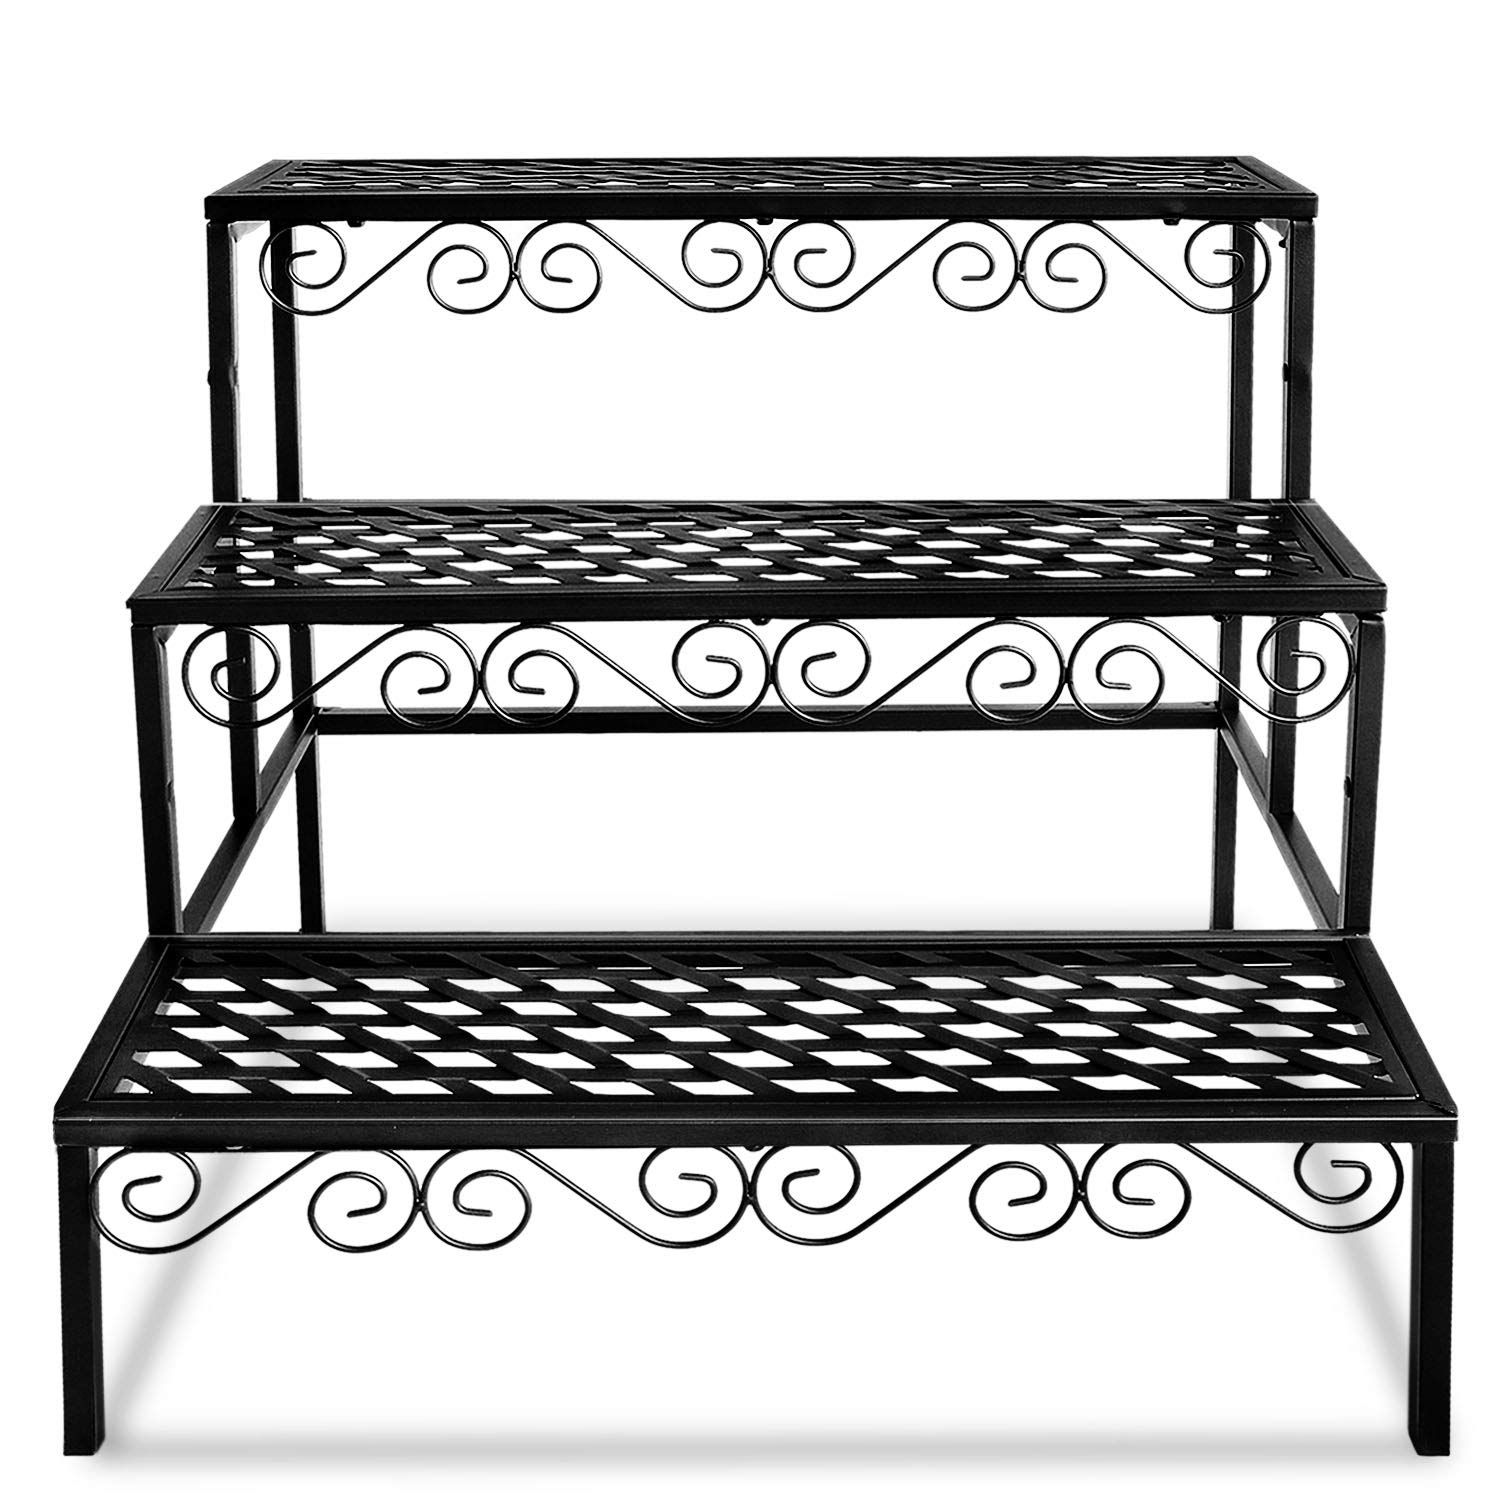 Tiered Plant Stand Outdoor Metal 3 Tier Stands for Multiple Plants Ladder Potted Indoor Shelf Holder Rack by FOYUEE